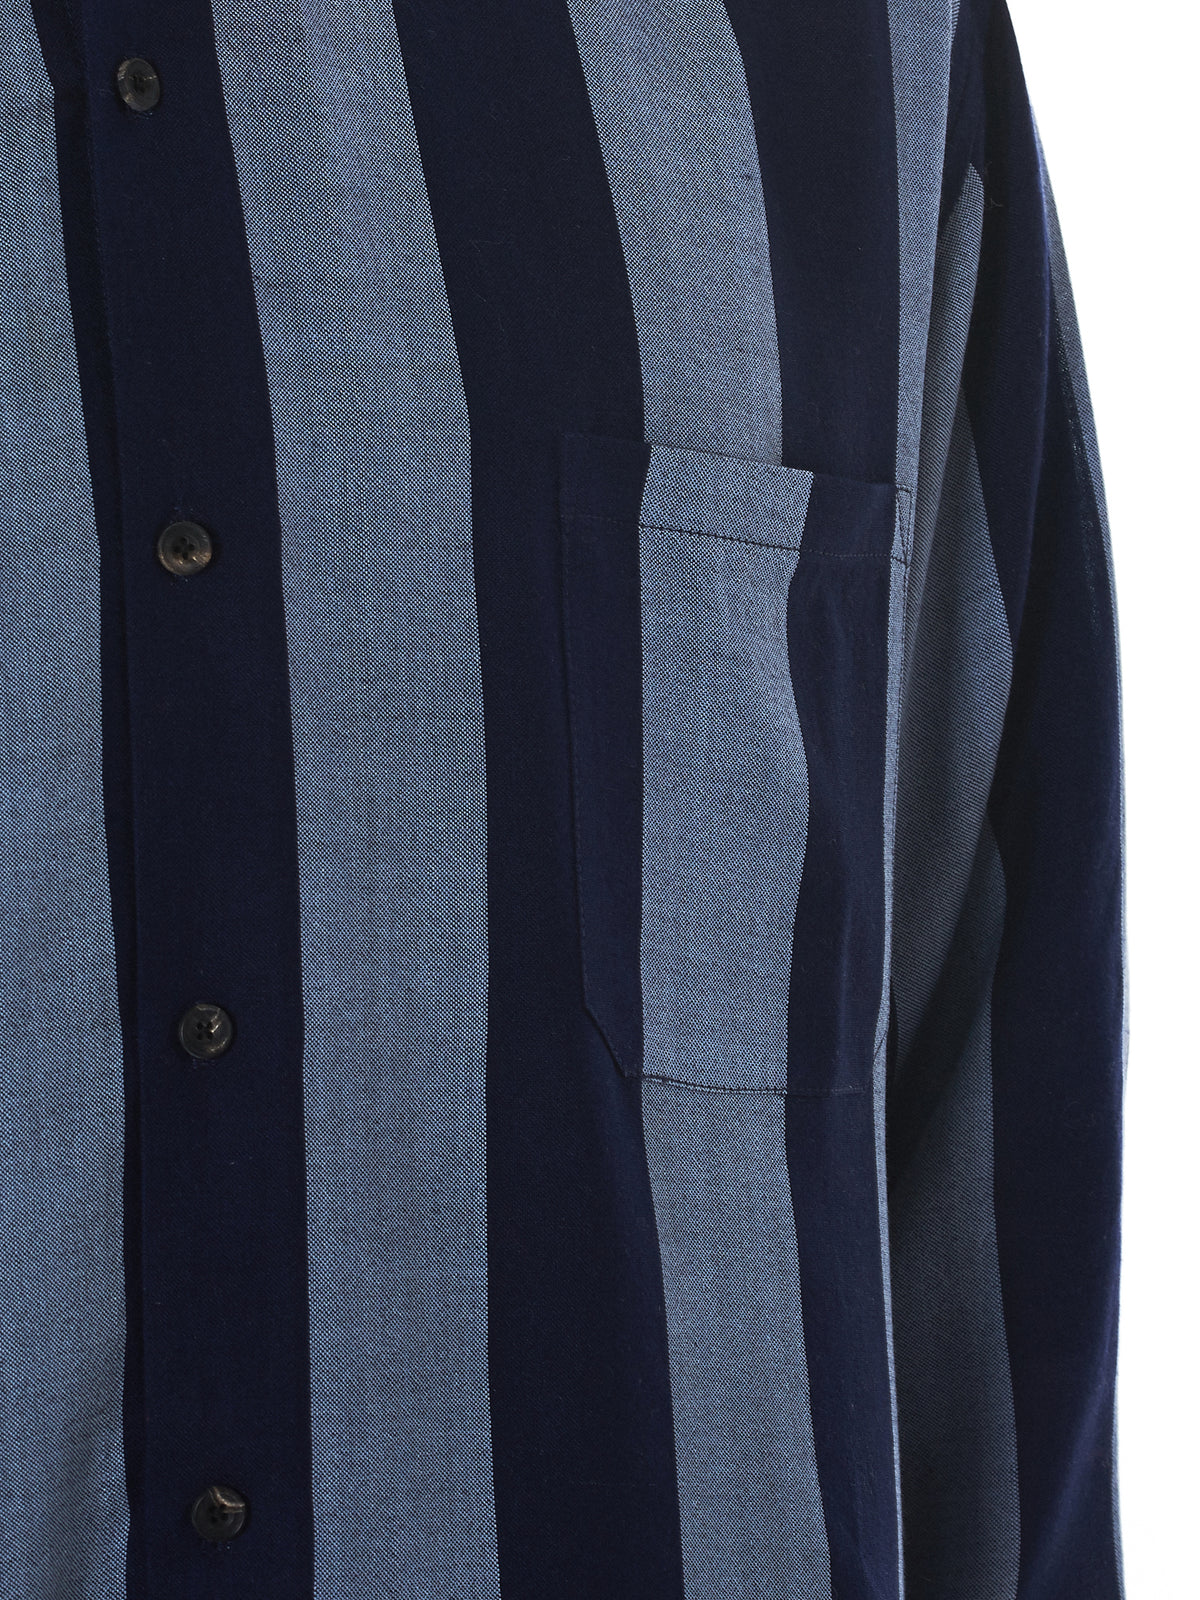 Denis Colomb Shirt -Hlorenzo pocket detail